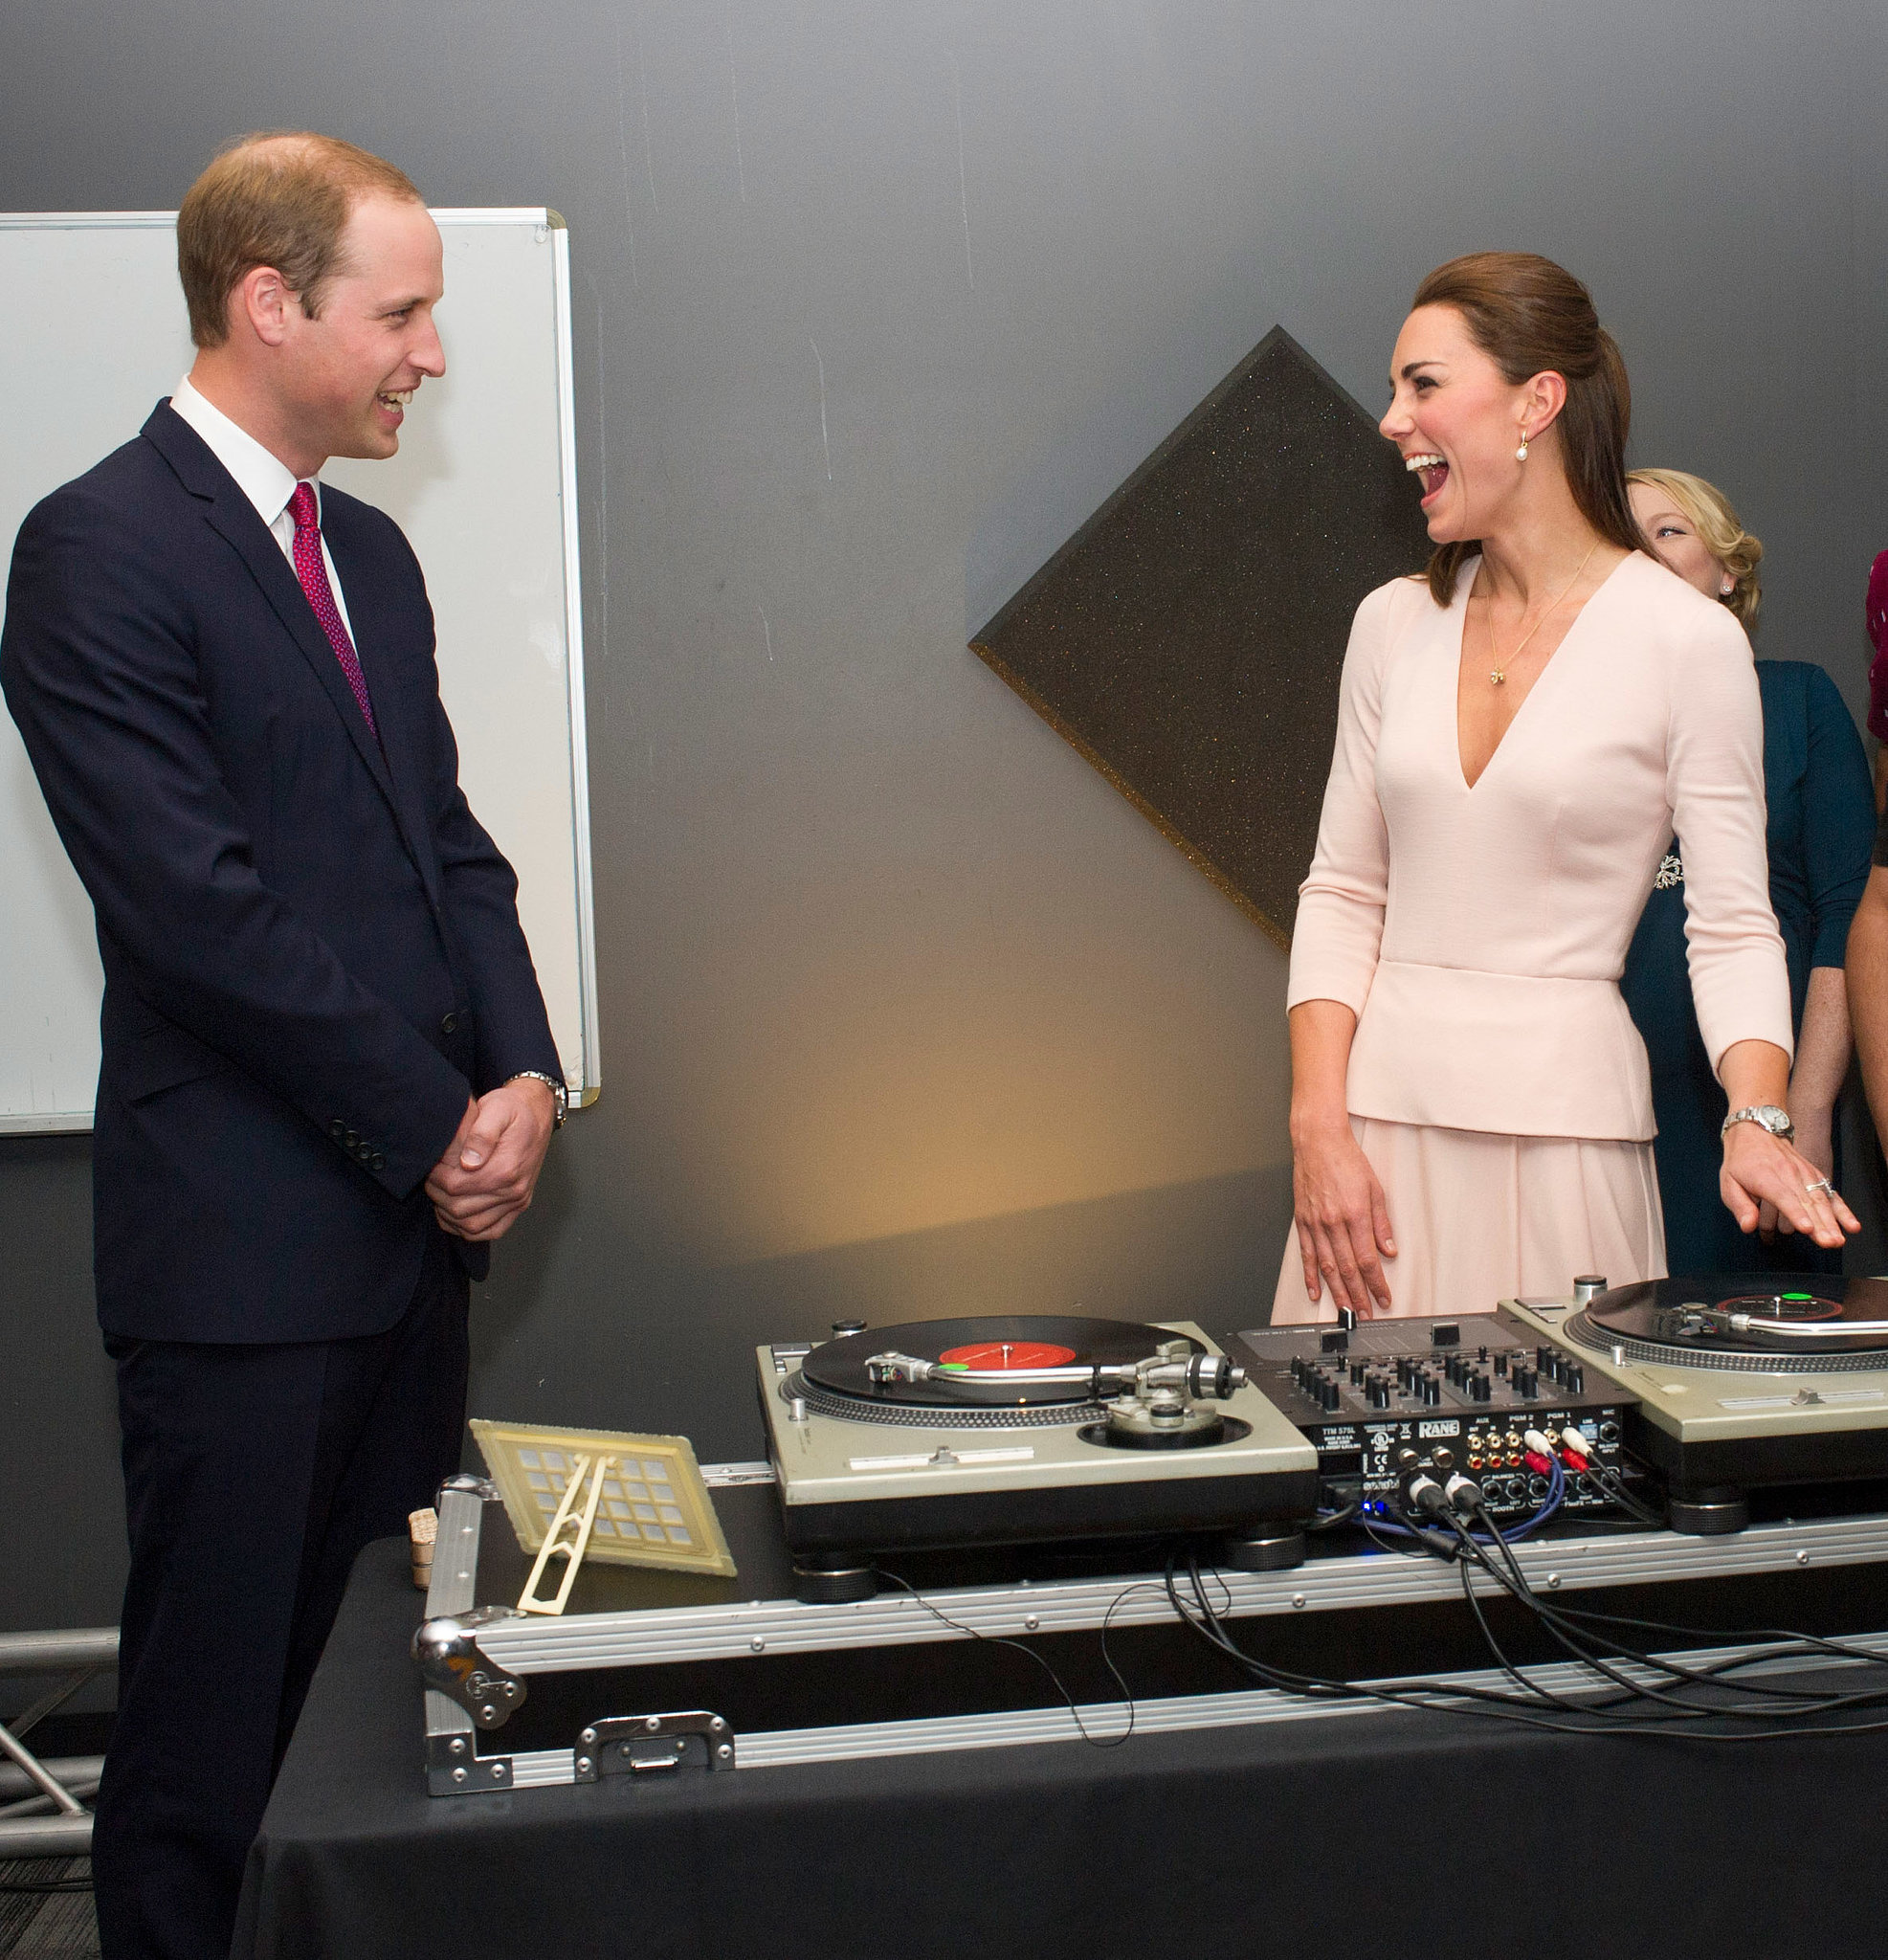 Kate cracked up while channeling her inner DJ in front of Prince William in Adelaide, Australia, during their April 2014 royal tour.